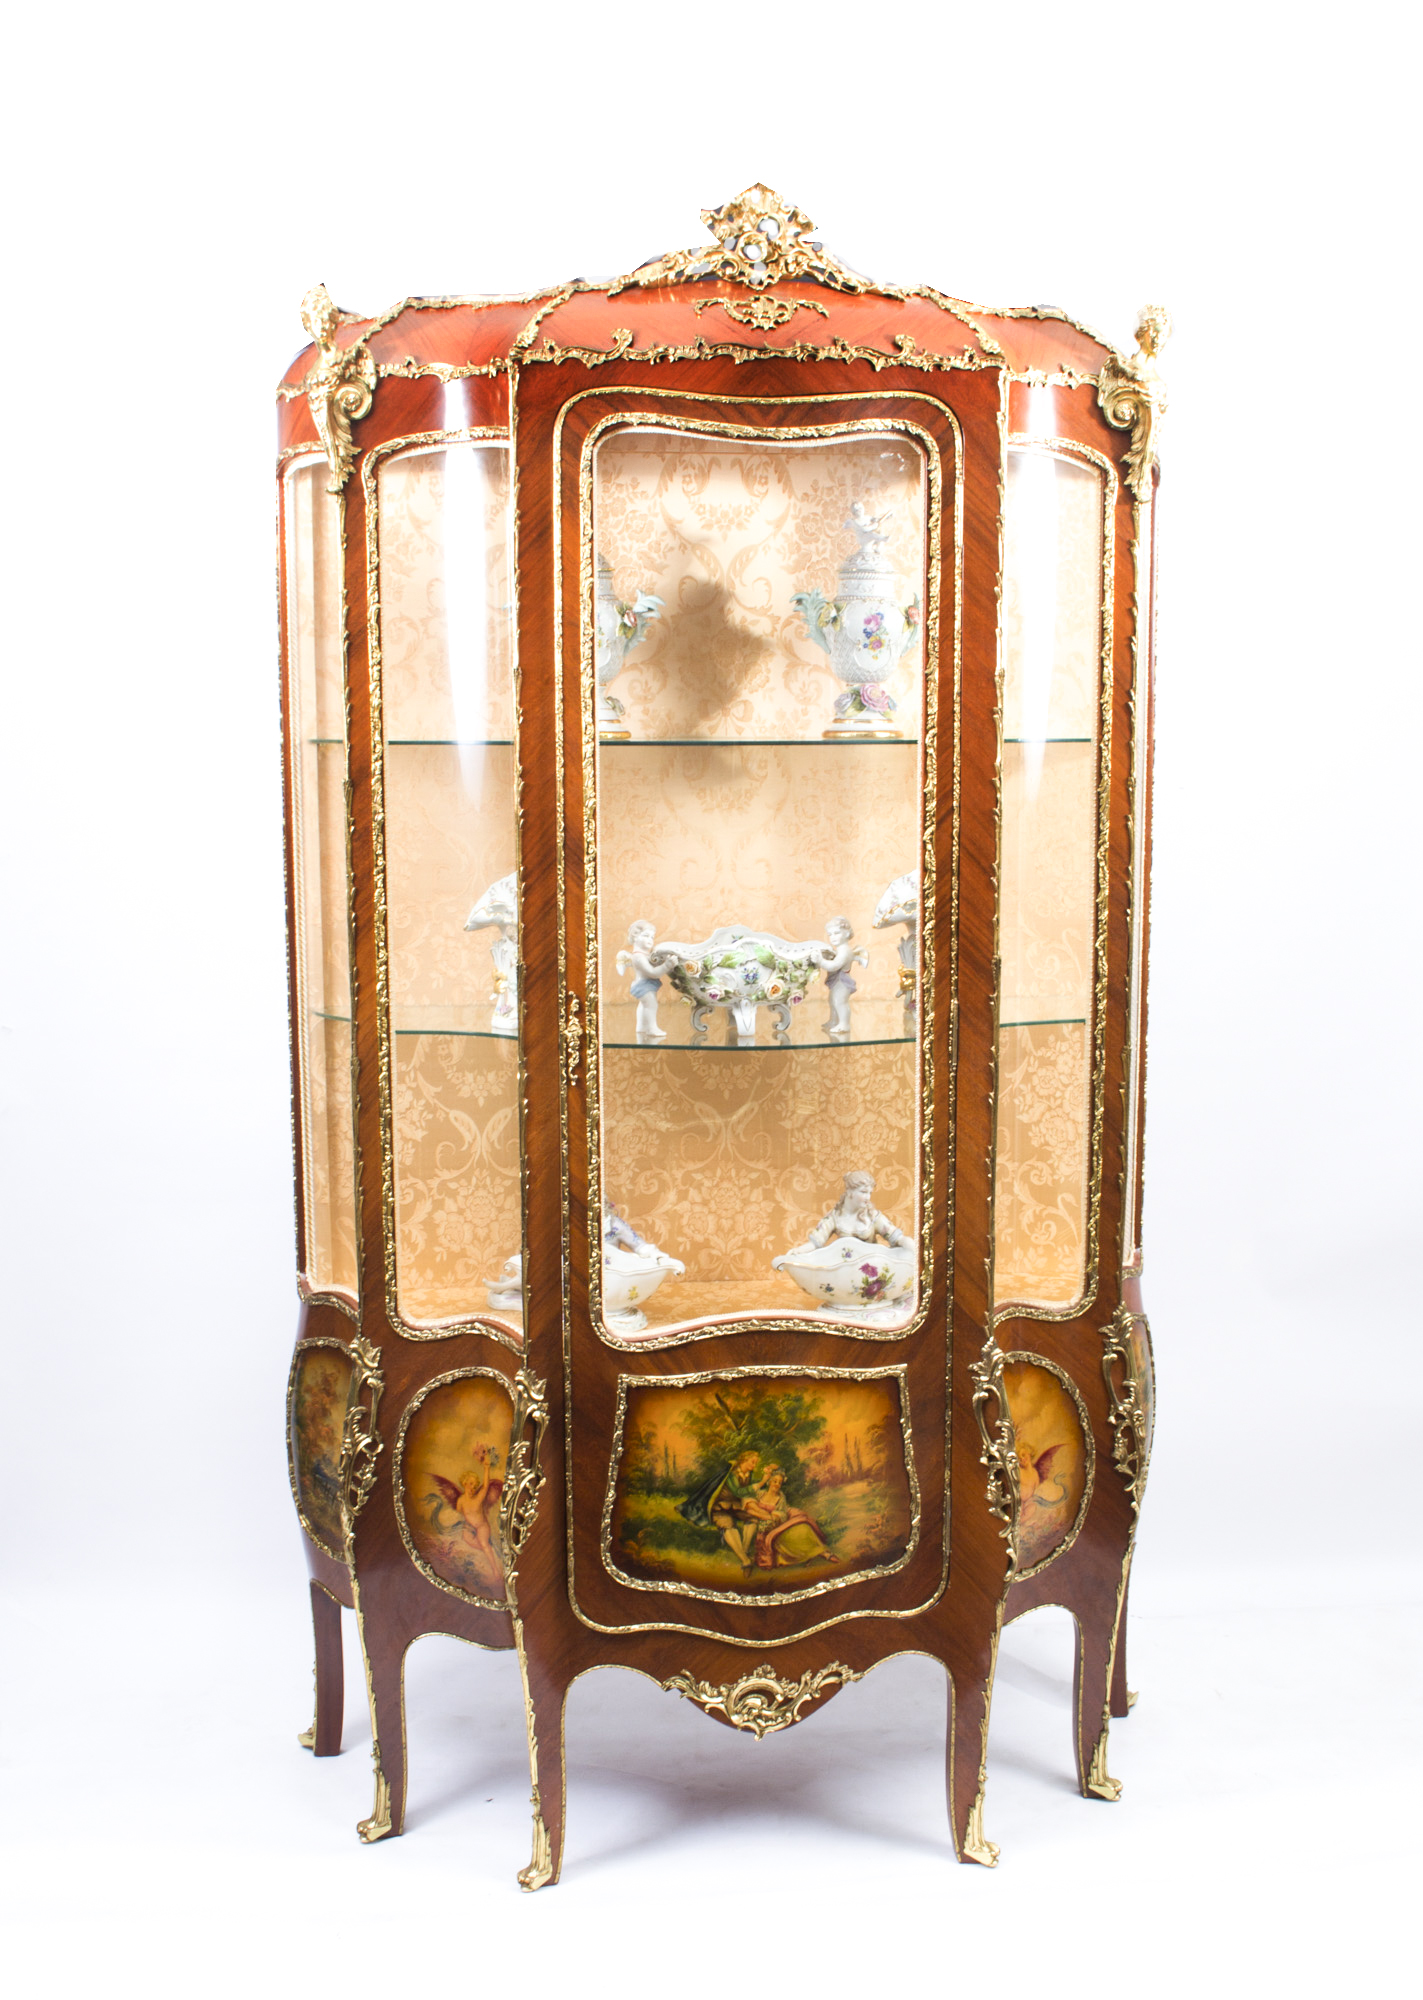 Antique French Large Vernis Martin Display Cabinet C1910 | Ref. no. 07286 - Antique French Large Vernis Martin Display Cabinet C1910 Ref. No